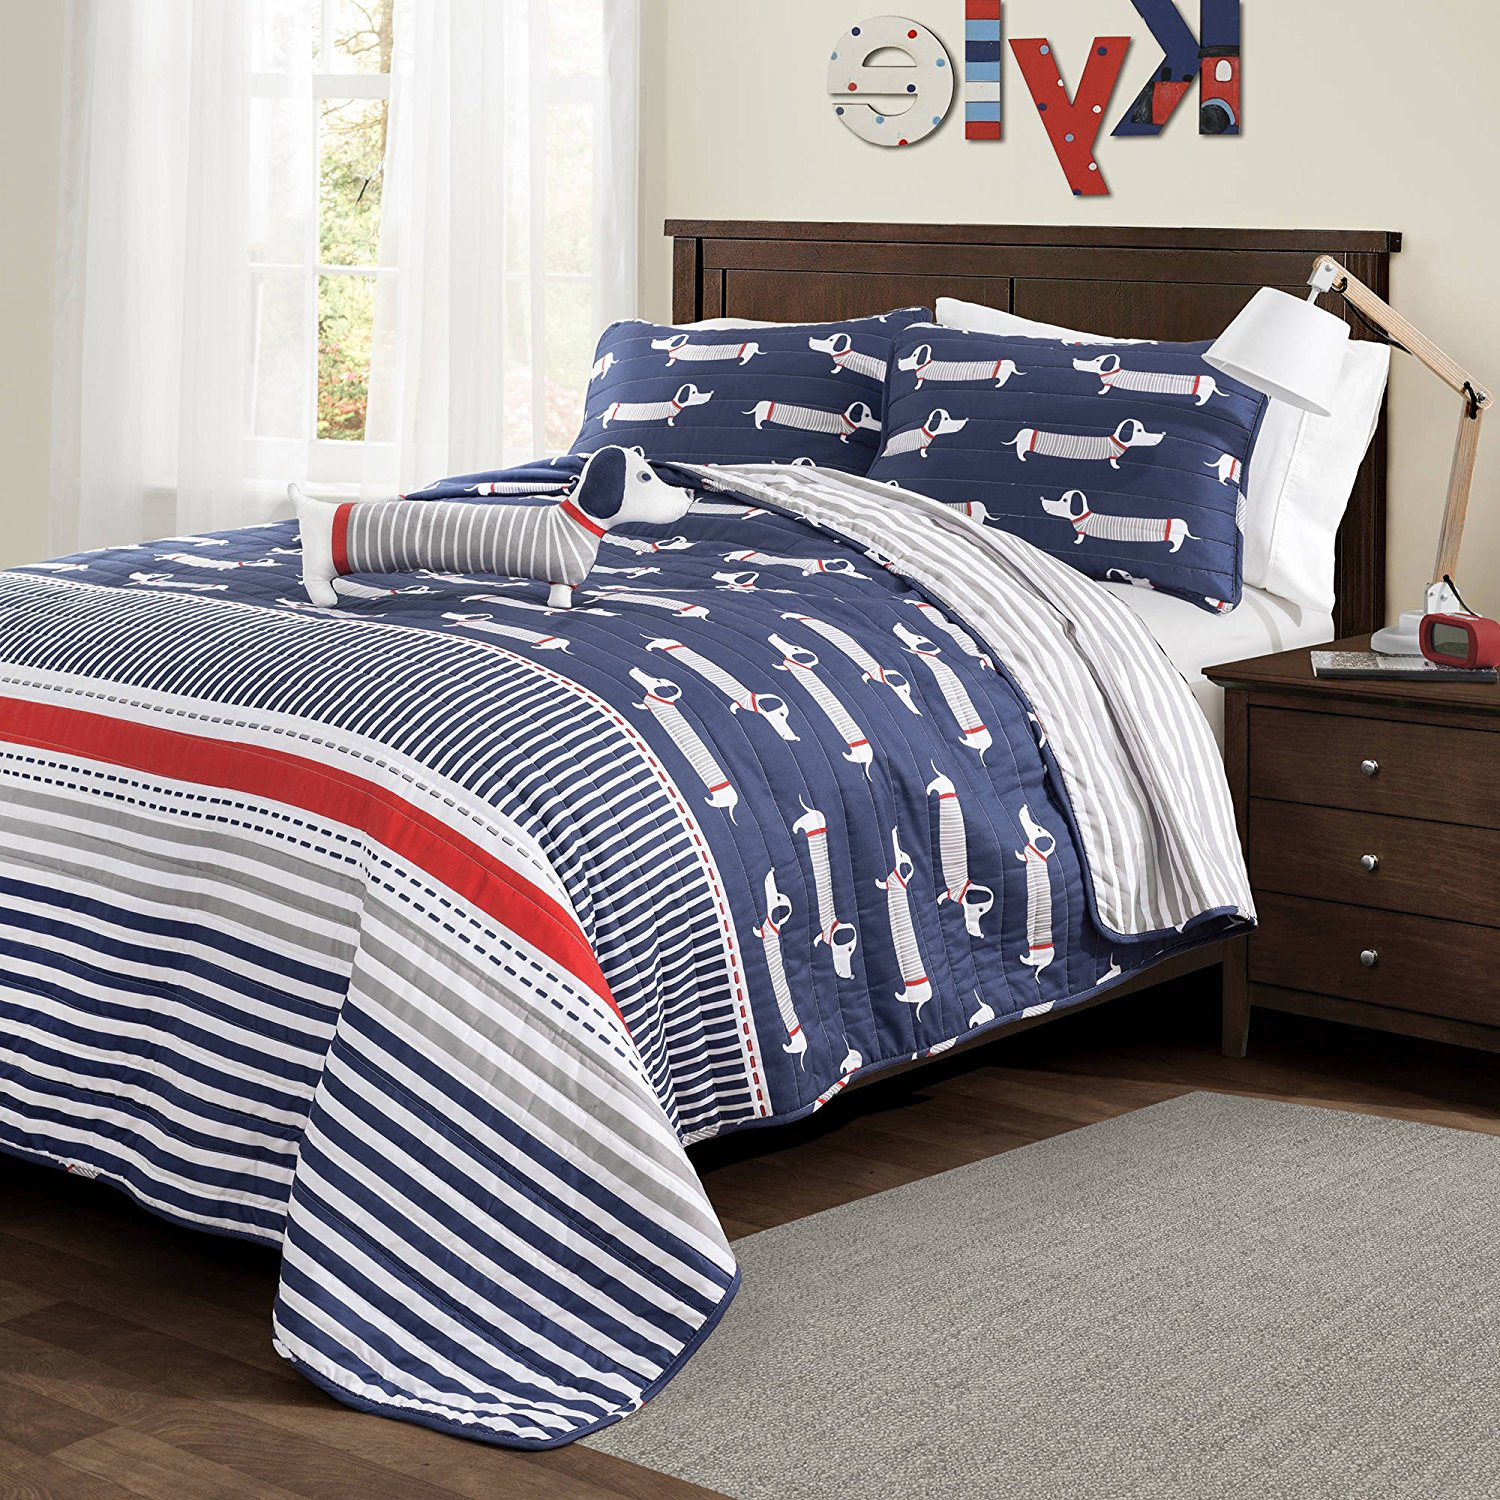 4 Piece Cute Kids Red Navy Blue White Grey Full Queen Quilt Set, Dog Themed Reversible Bedding Sausage Weiner Dog Animal Striped Fun Adorable Puppy Dachshund Doggy, Polyester